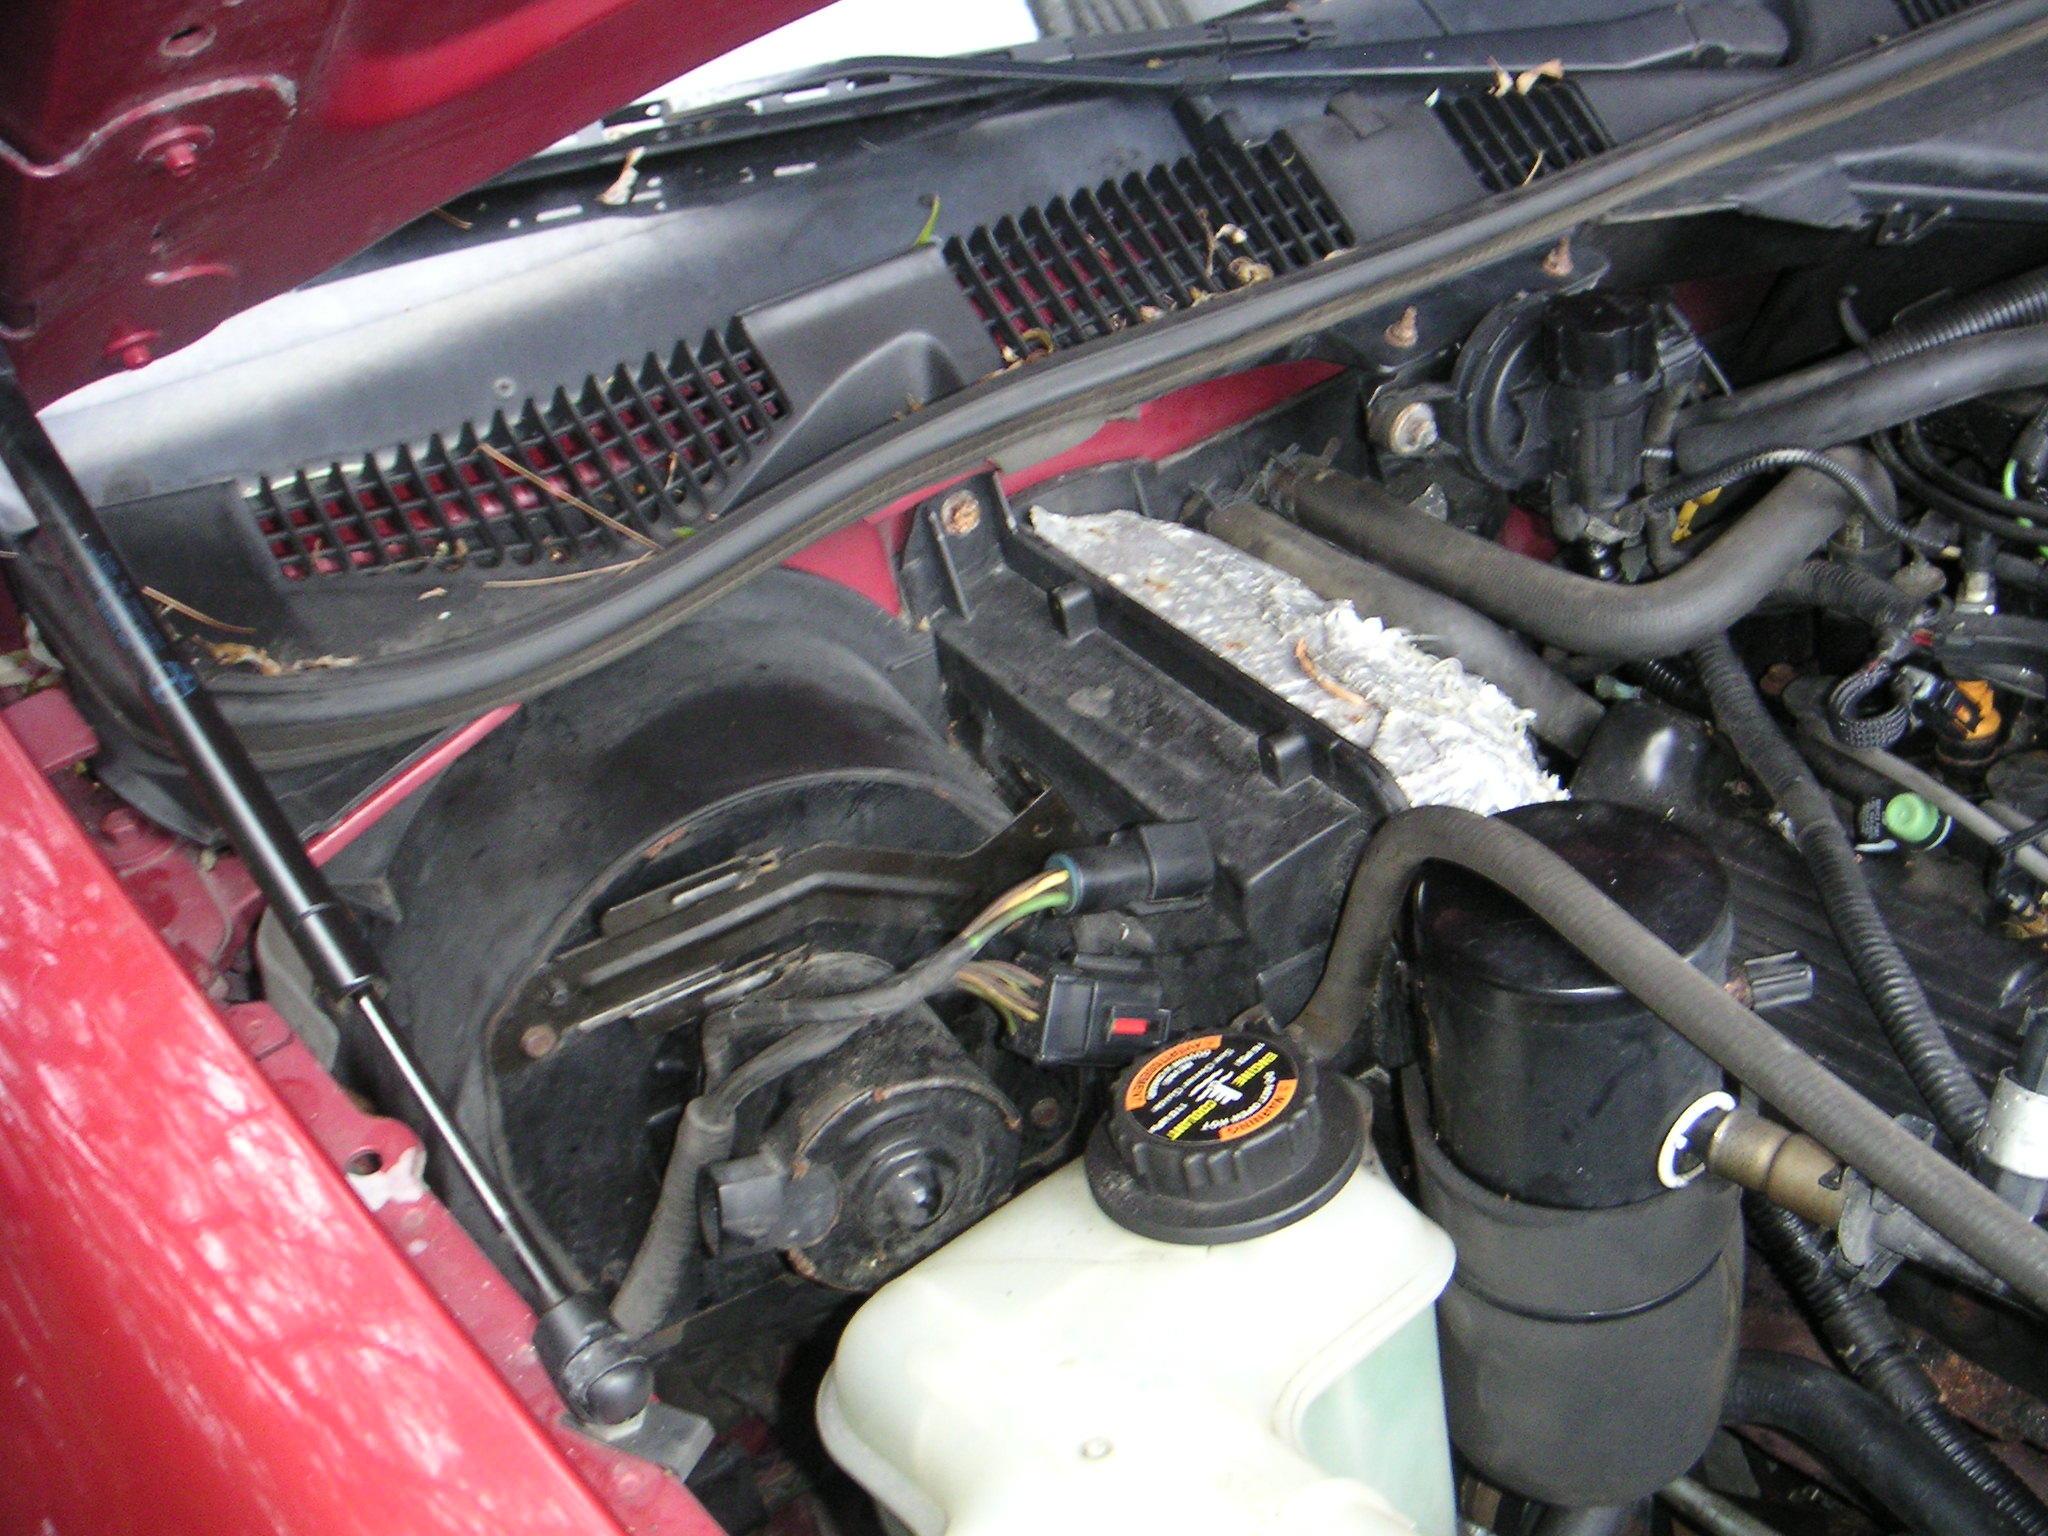 Ford Crown Victoria Wiring Harness Problems Car Repair And Reconnect The Electrical Connectors Under Hood